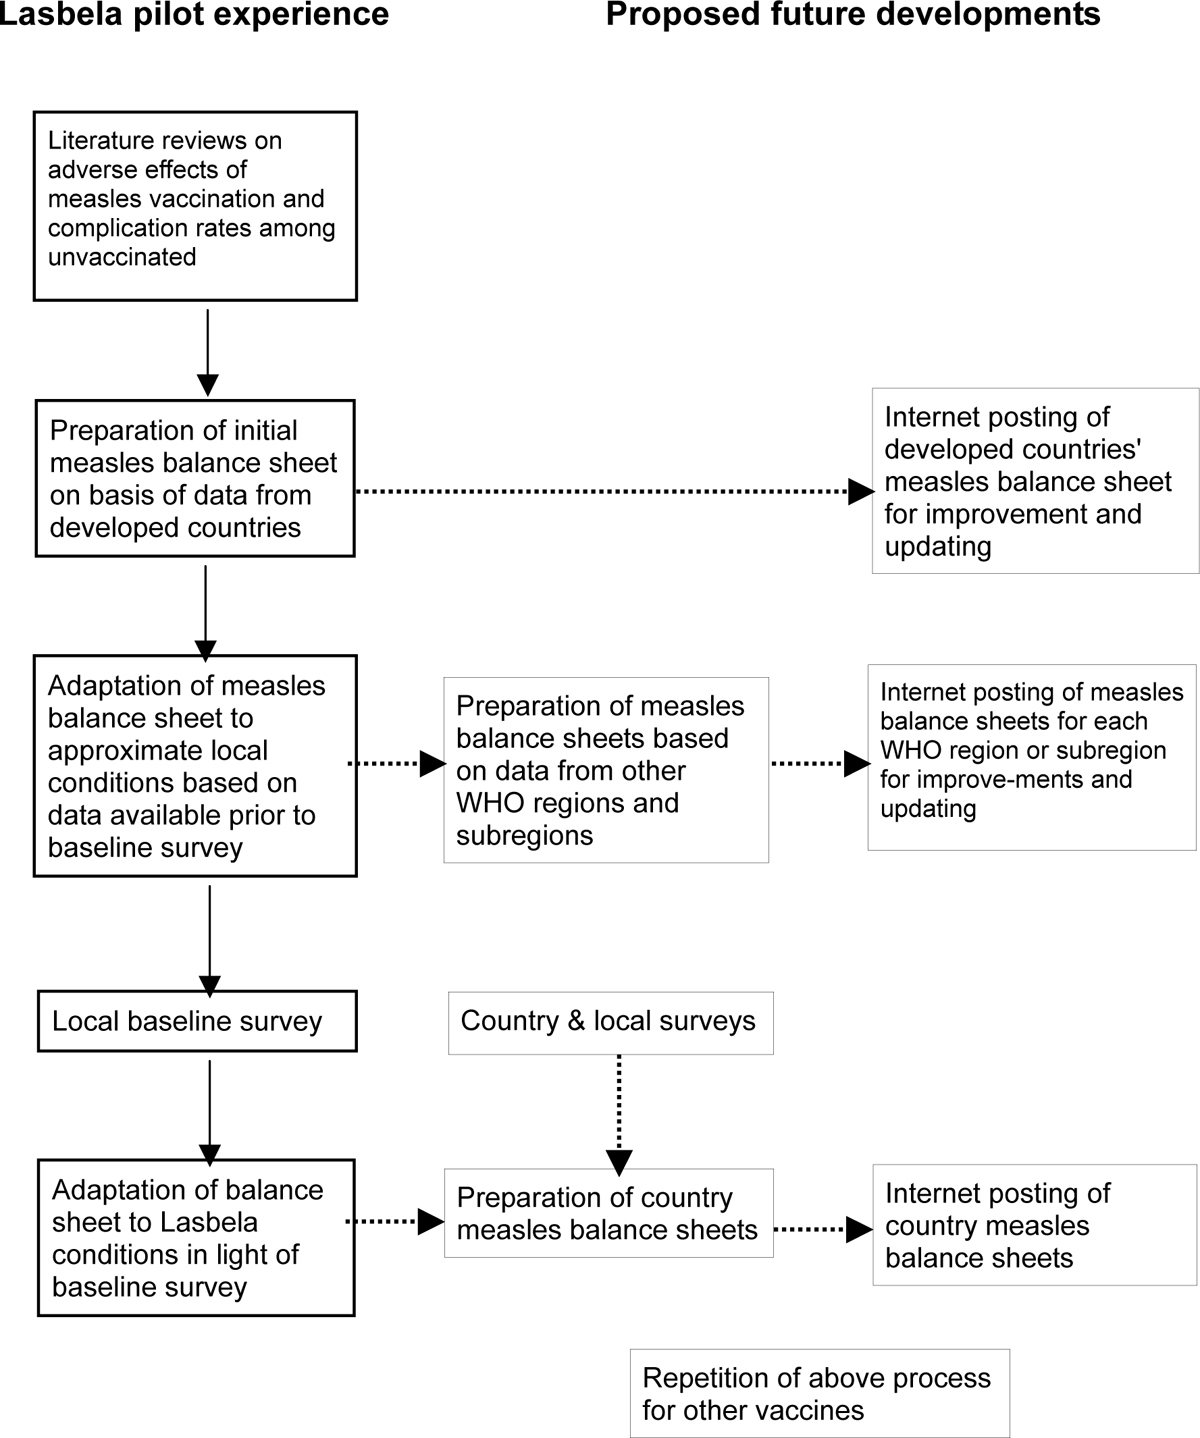 Knowledge synthesis of benefits and adverse effects of